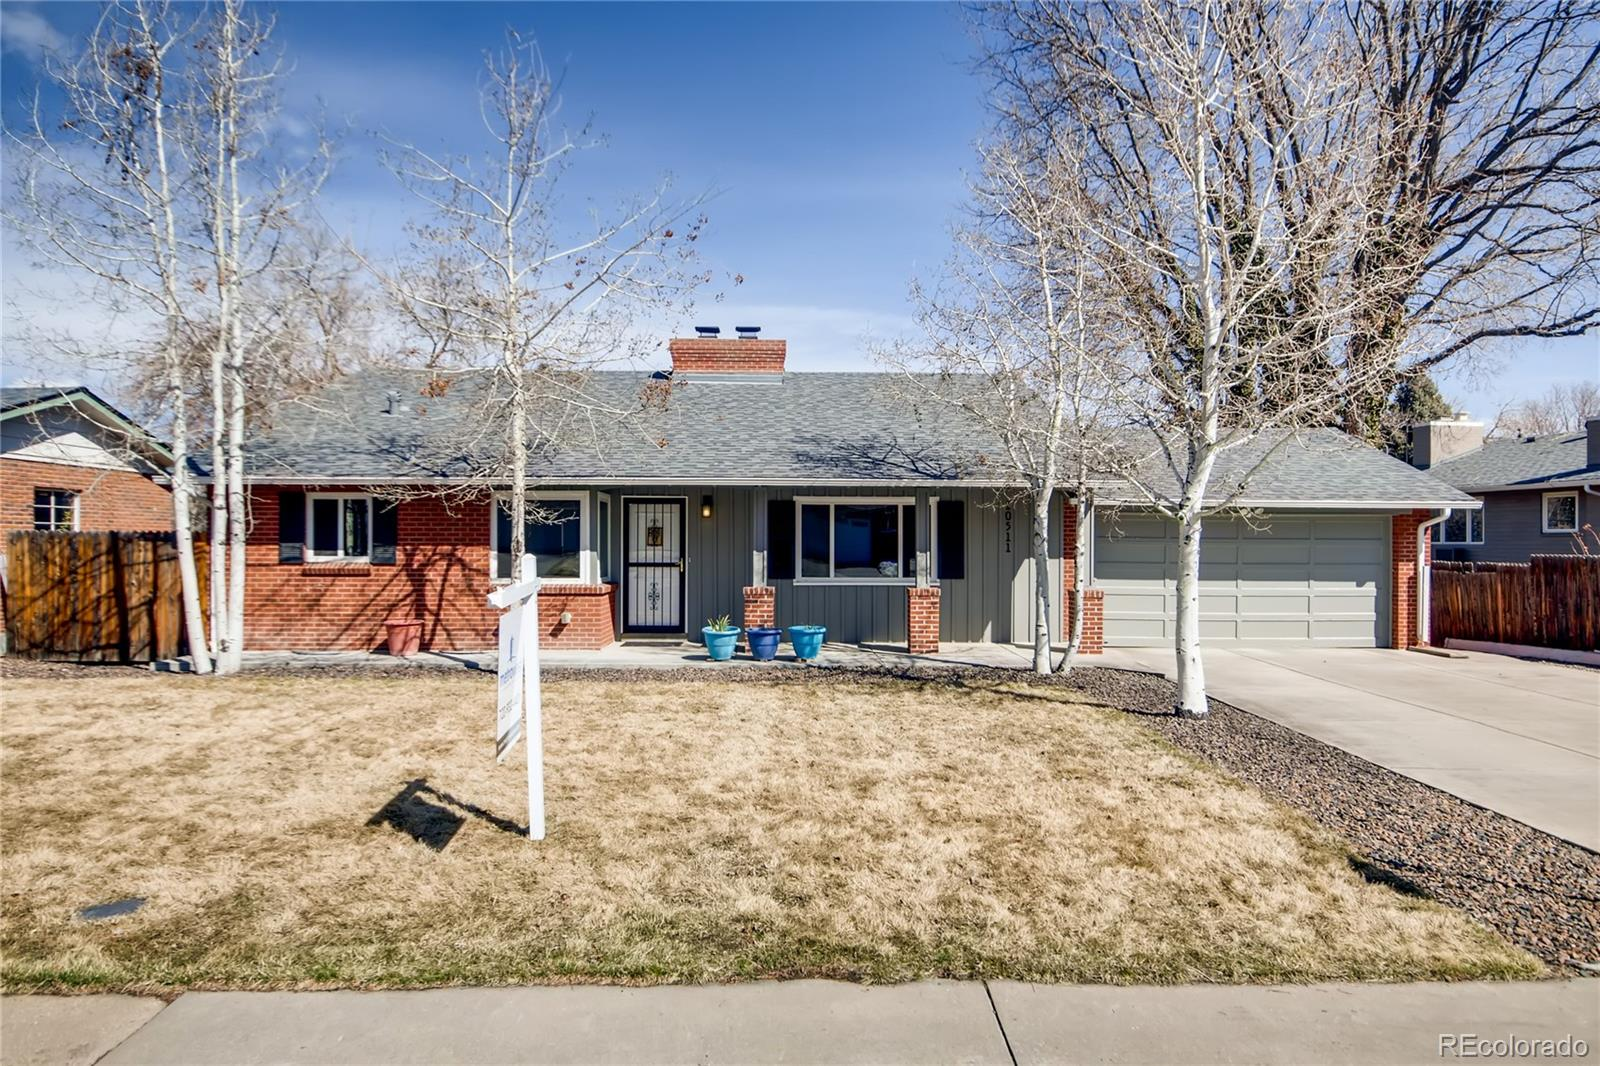 MLS# 9197299 - 1 - 10511 W 22nd Place, Lakewood, CO 80215